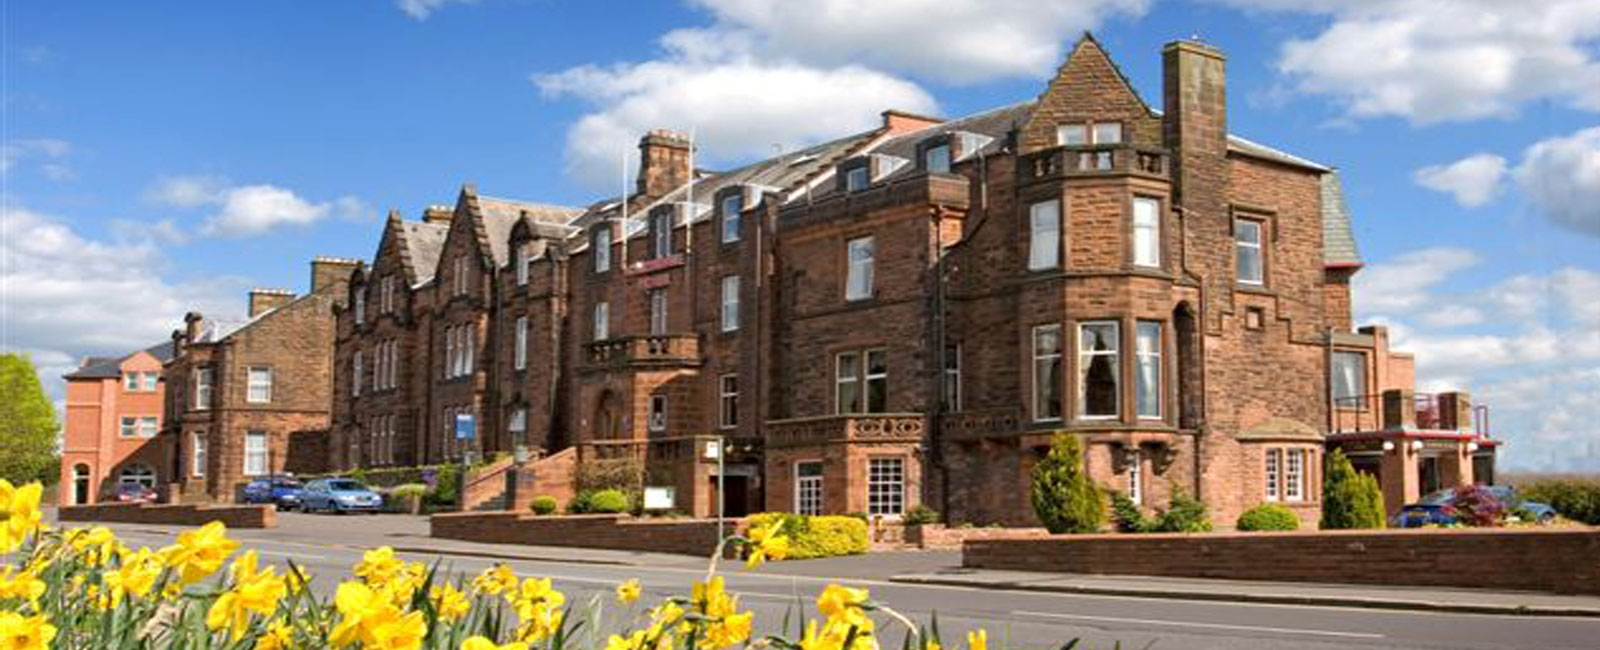 Most booked hotels in Largs in the past month